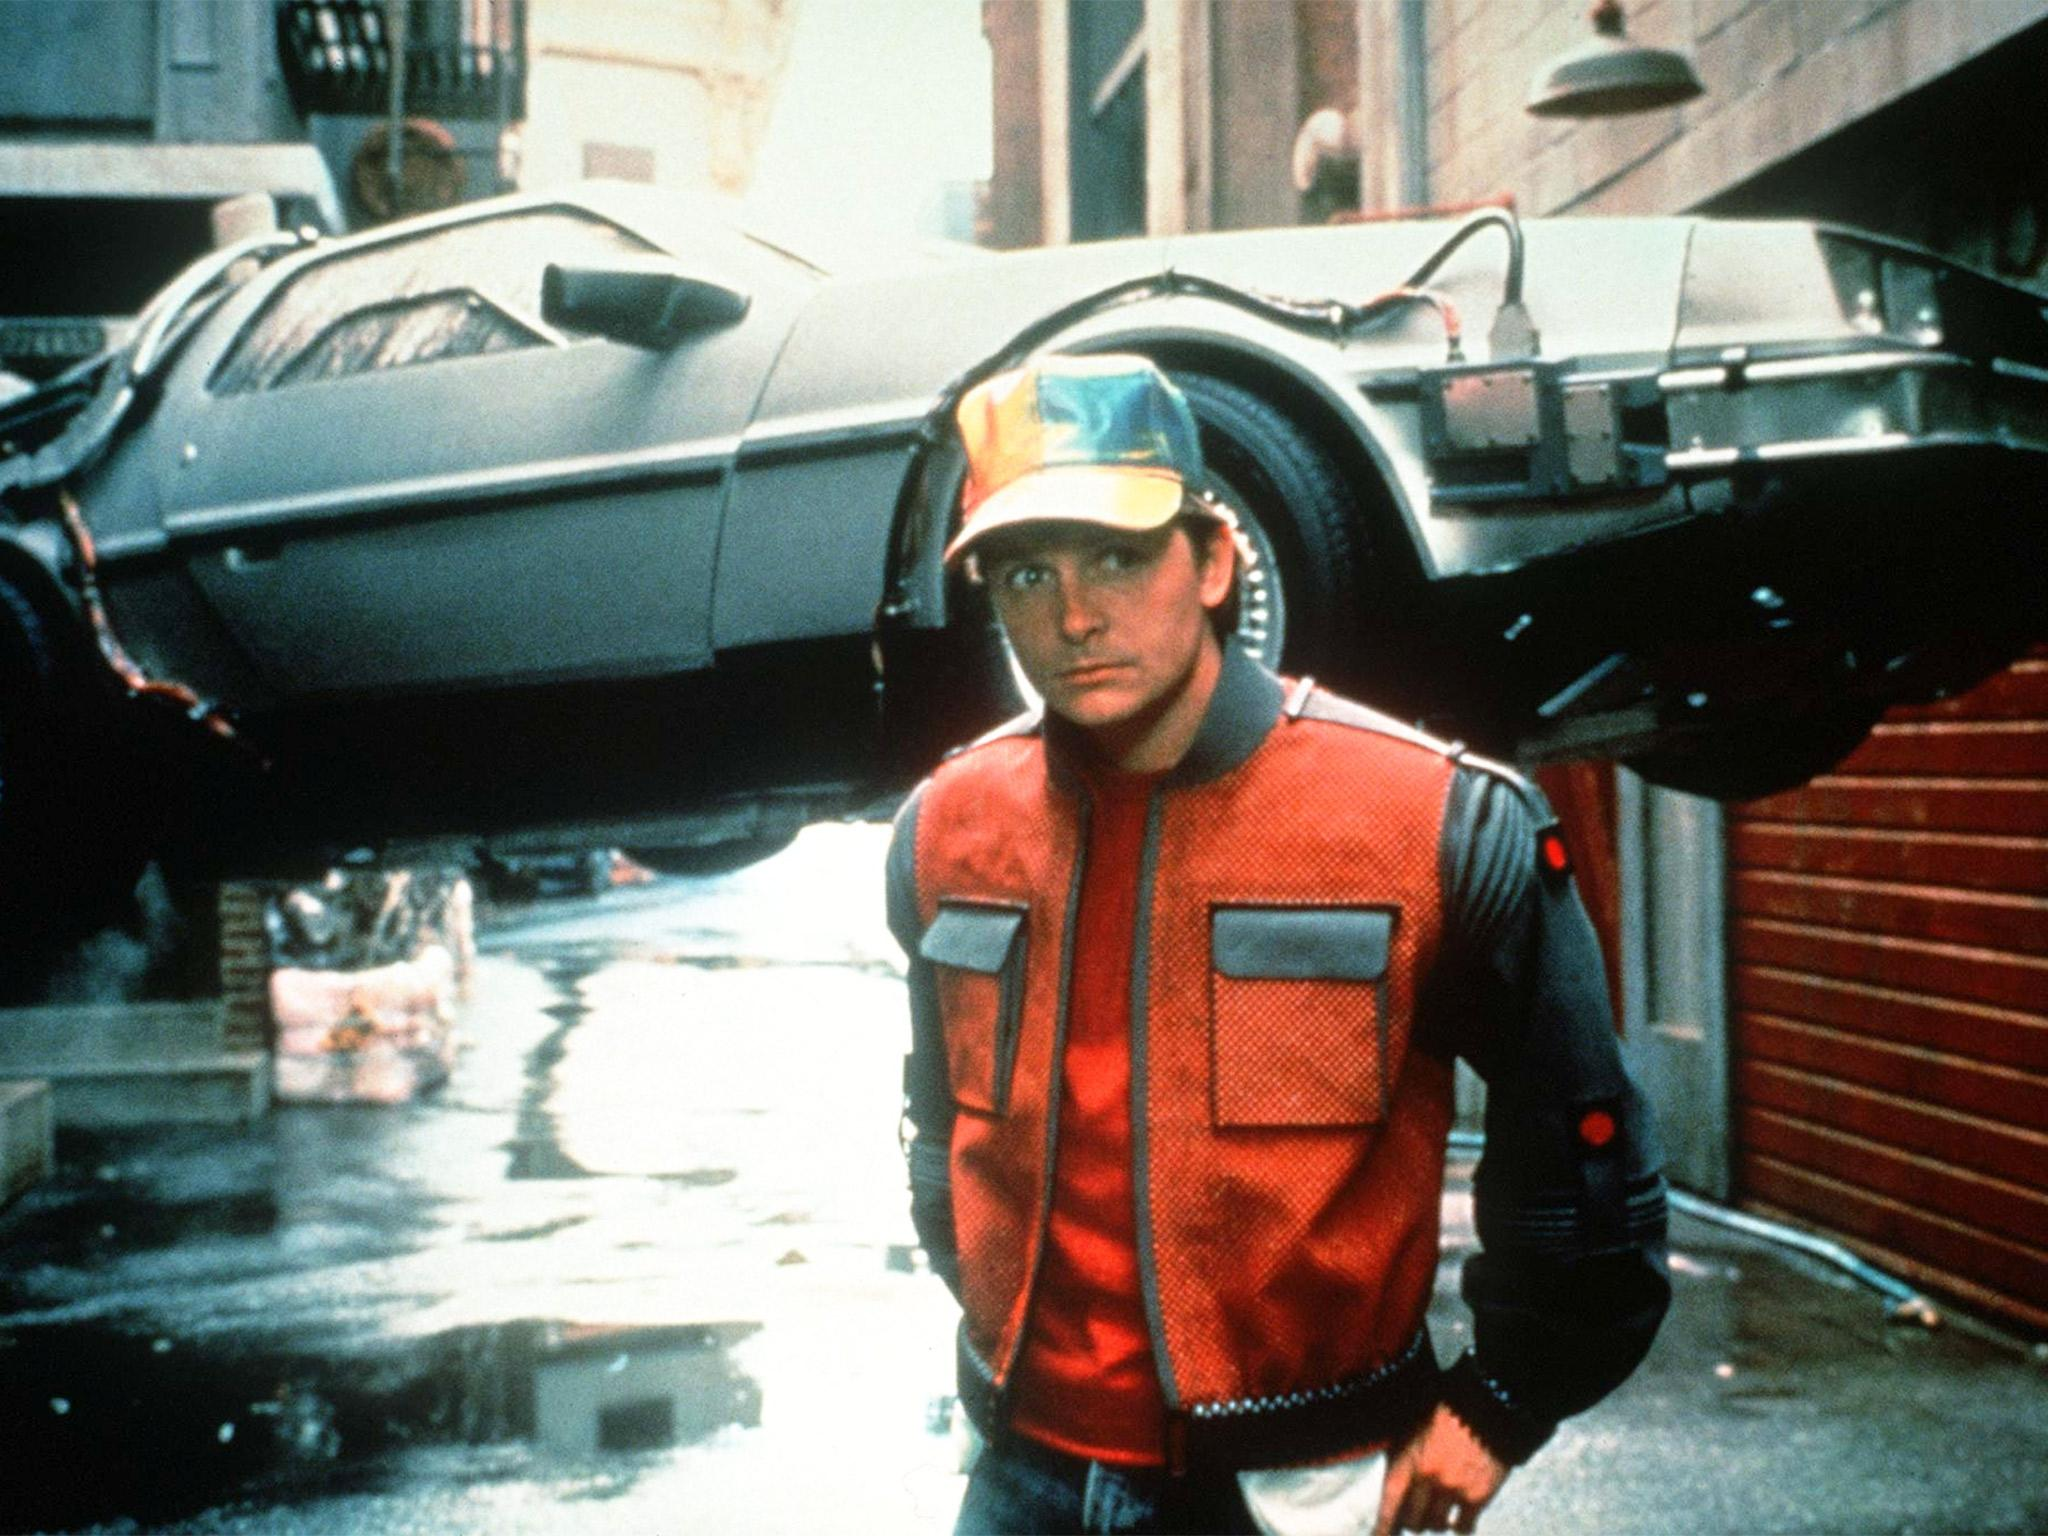 pg 34 back to future 1 20 Films Set In Futures Past: What They Got Right (And Wrong) About The World We Live In